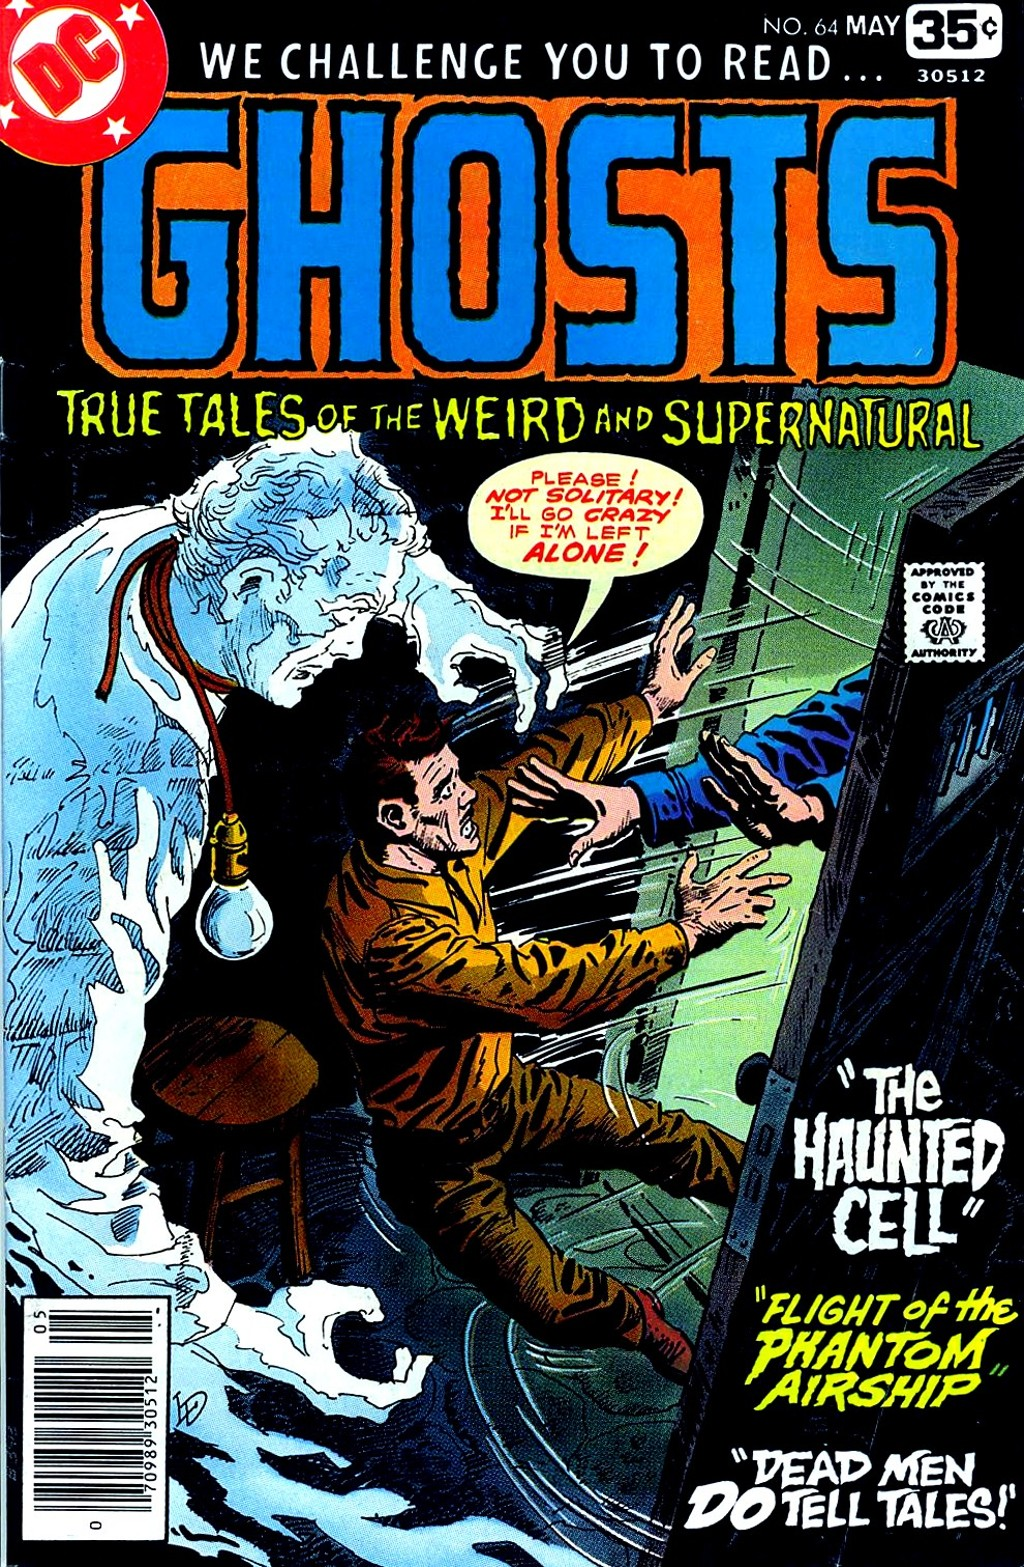 Read online Ghosts comic -  Issue #64 - 1